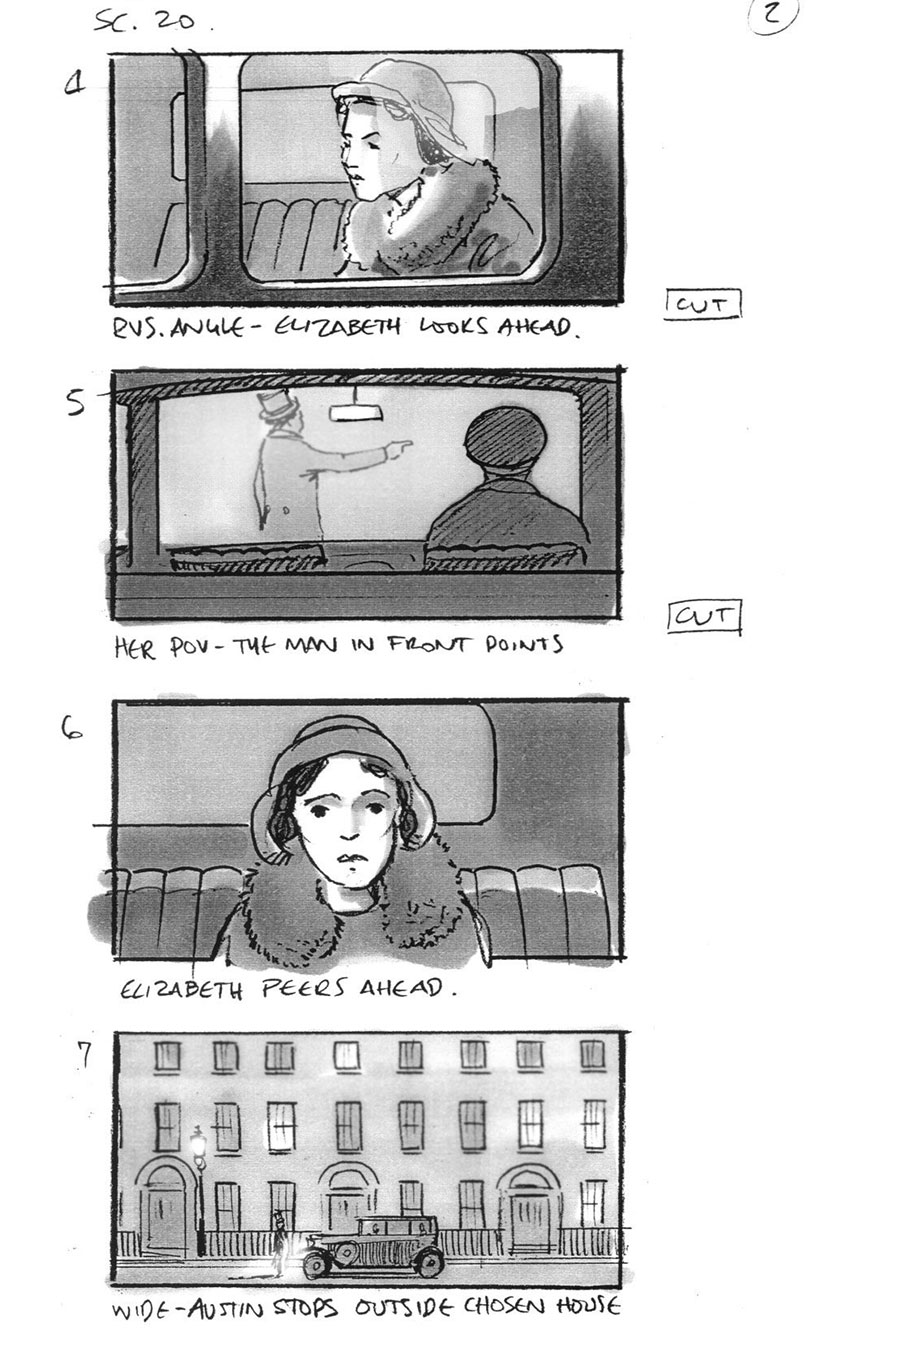 douglas ingram, storyboard art, the king's speech